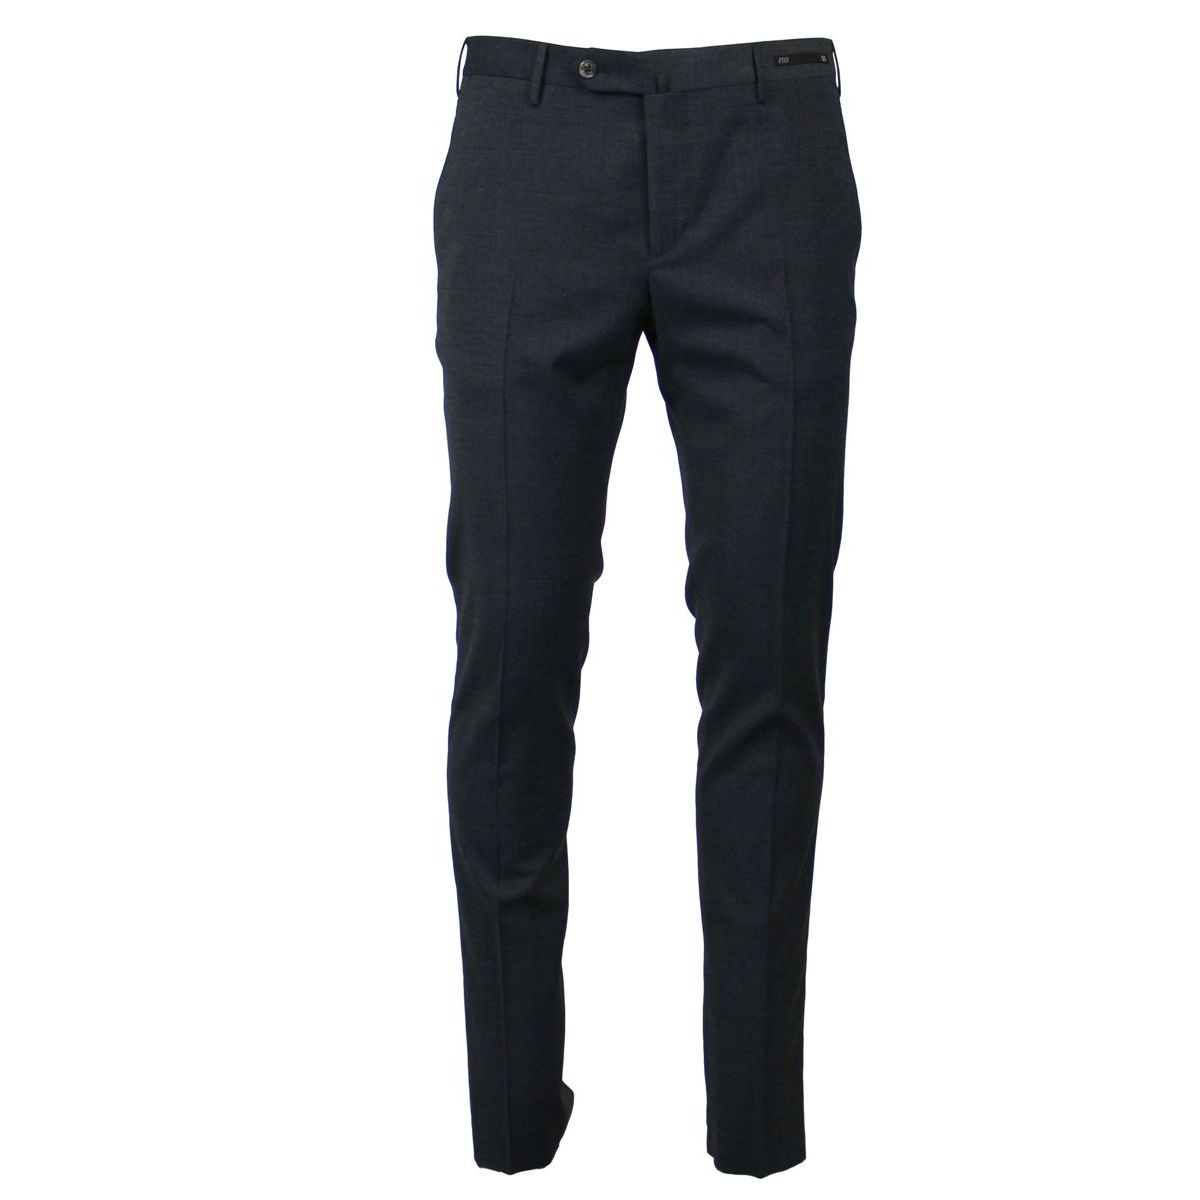 Stretch wool blend trousers with crease Medium gray PT01